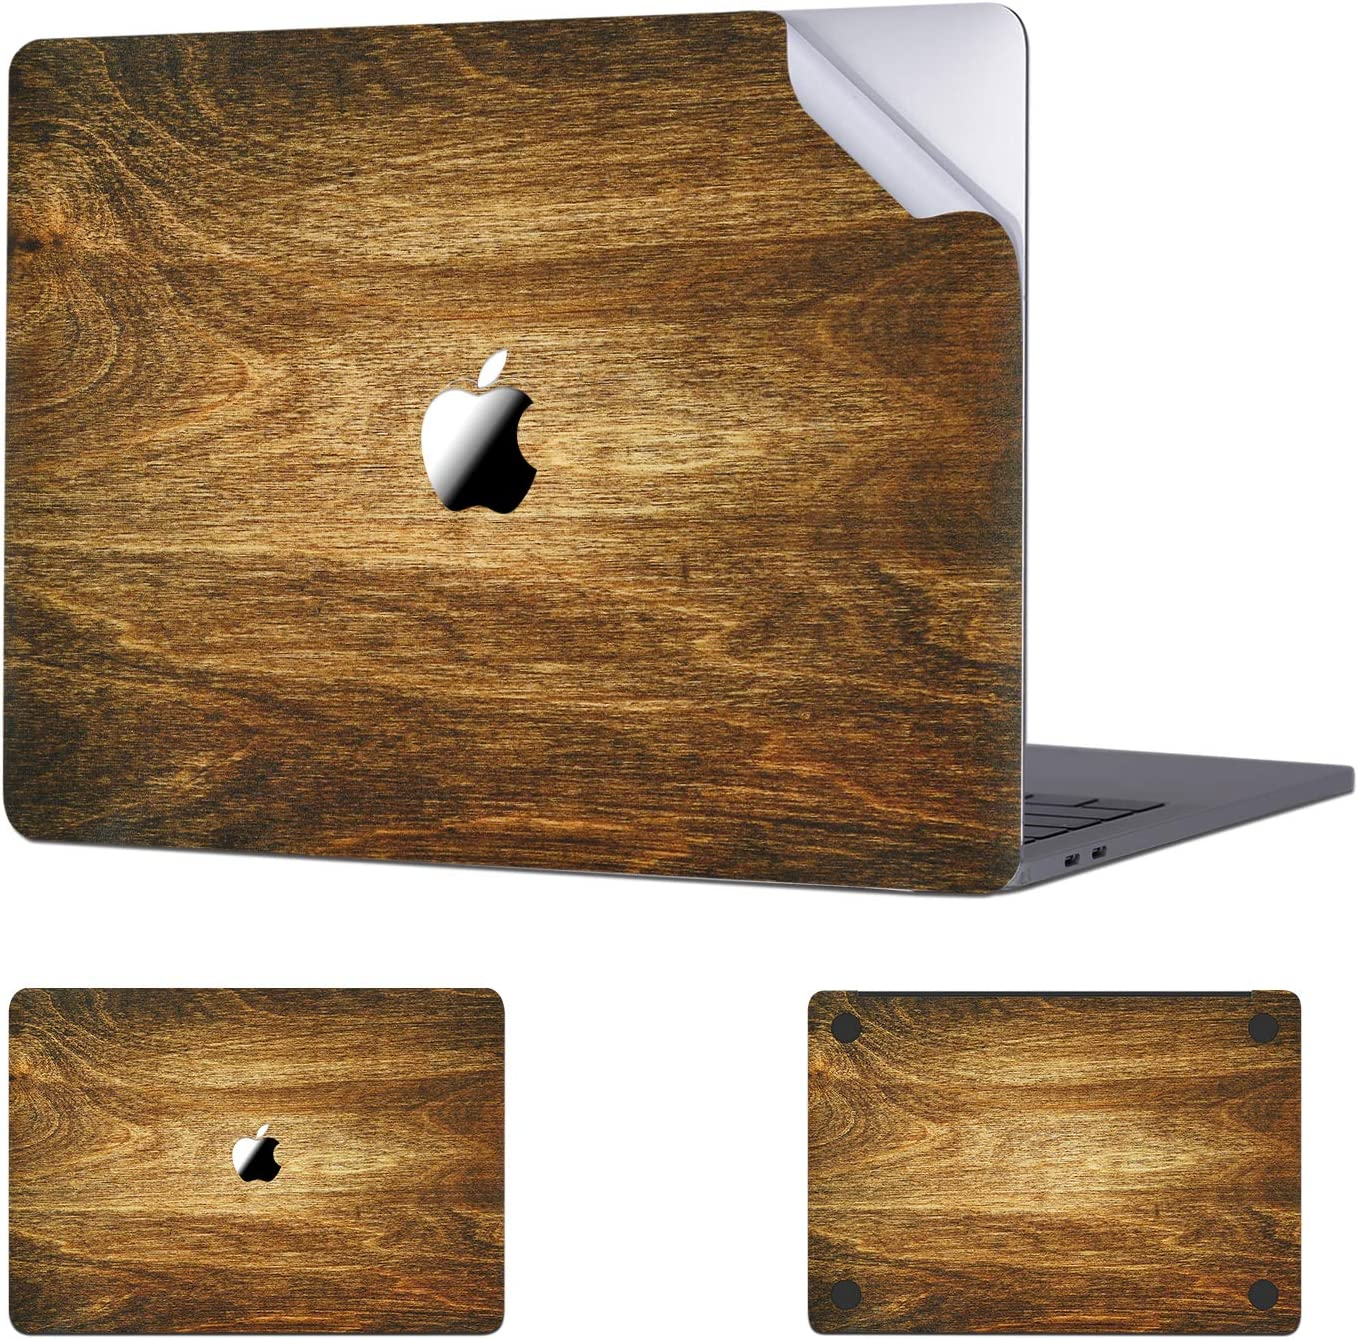 Digi-Tatoo MacBook Skin Decal Sticker Compatible with MacBook Air 13 inch 2020/2018 Release (Model A2337/A2179/A1932), Easy Apply Full Body Protective Vinyl Skin [Wood Texture 2]